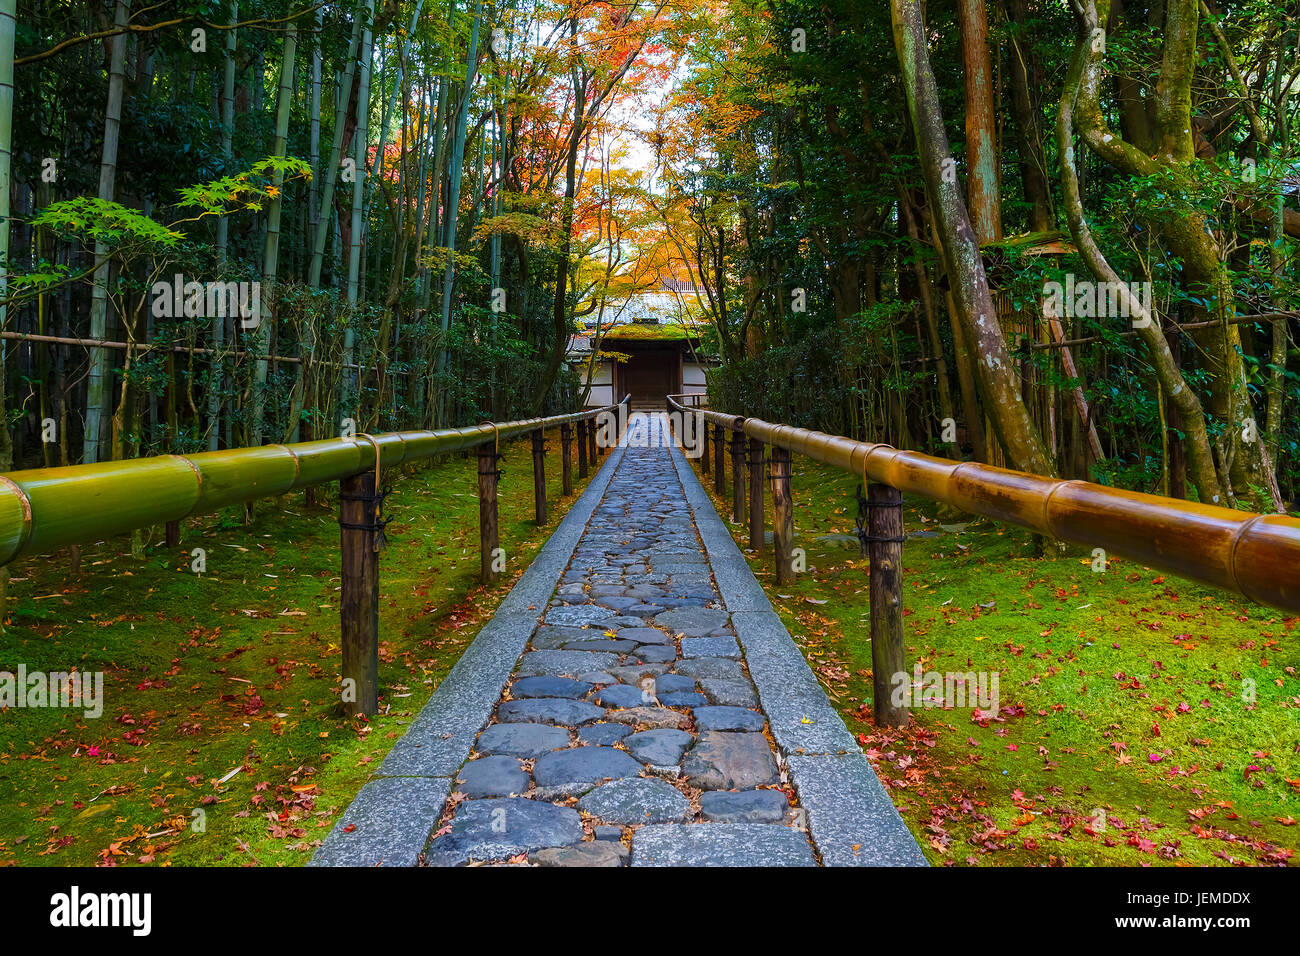 Colorful Autumn at Koto-in Temple in Kyoto, Japan - Stock Image